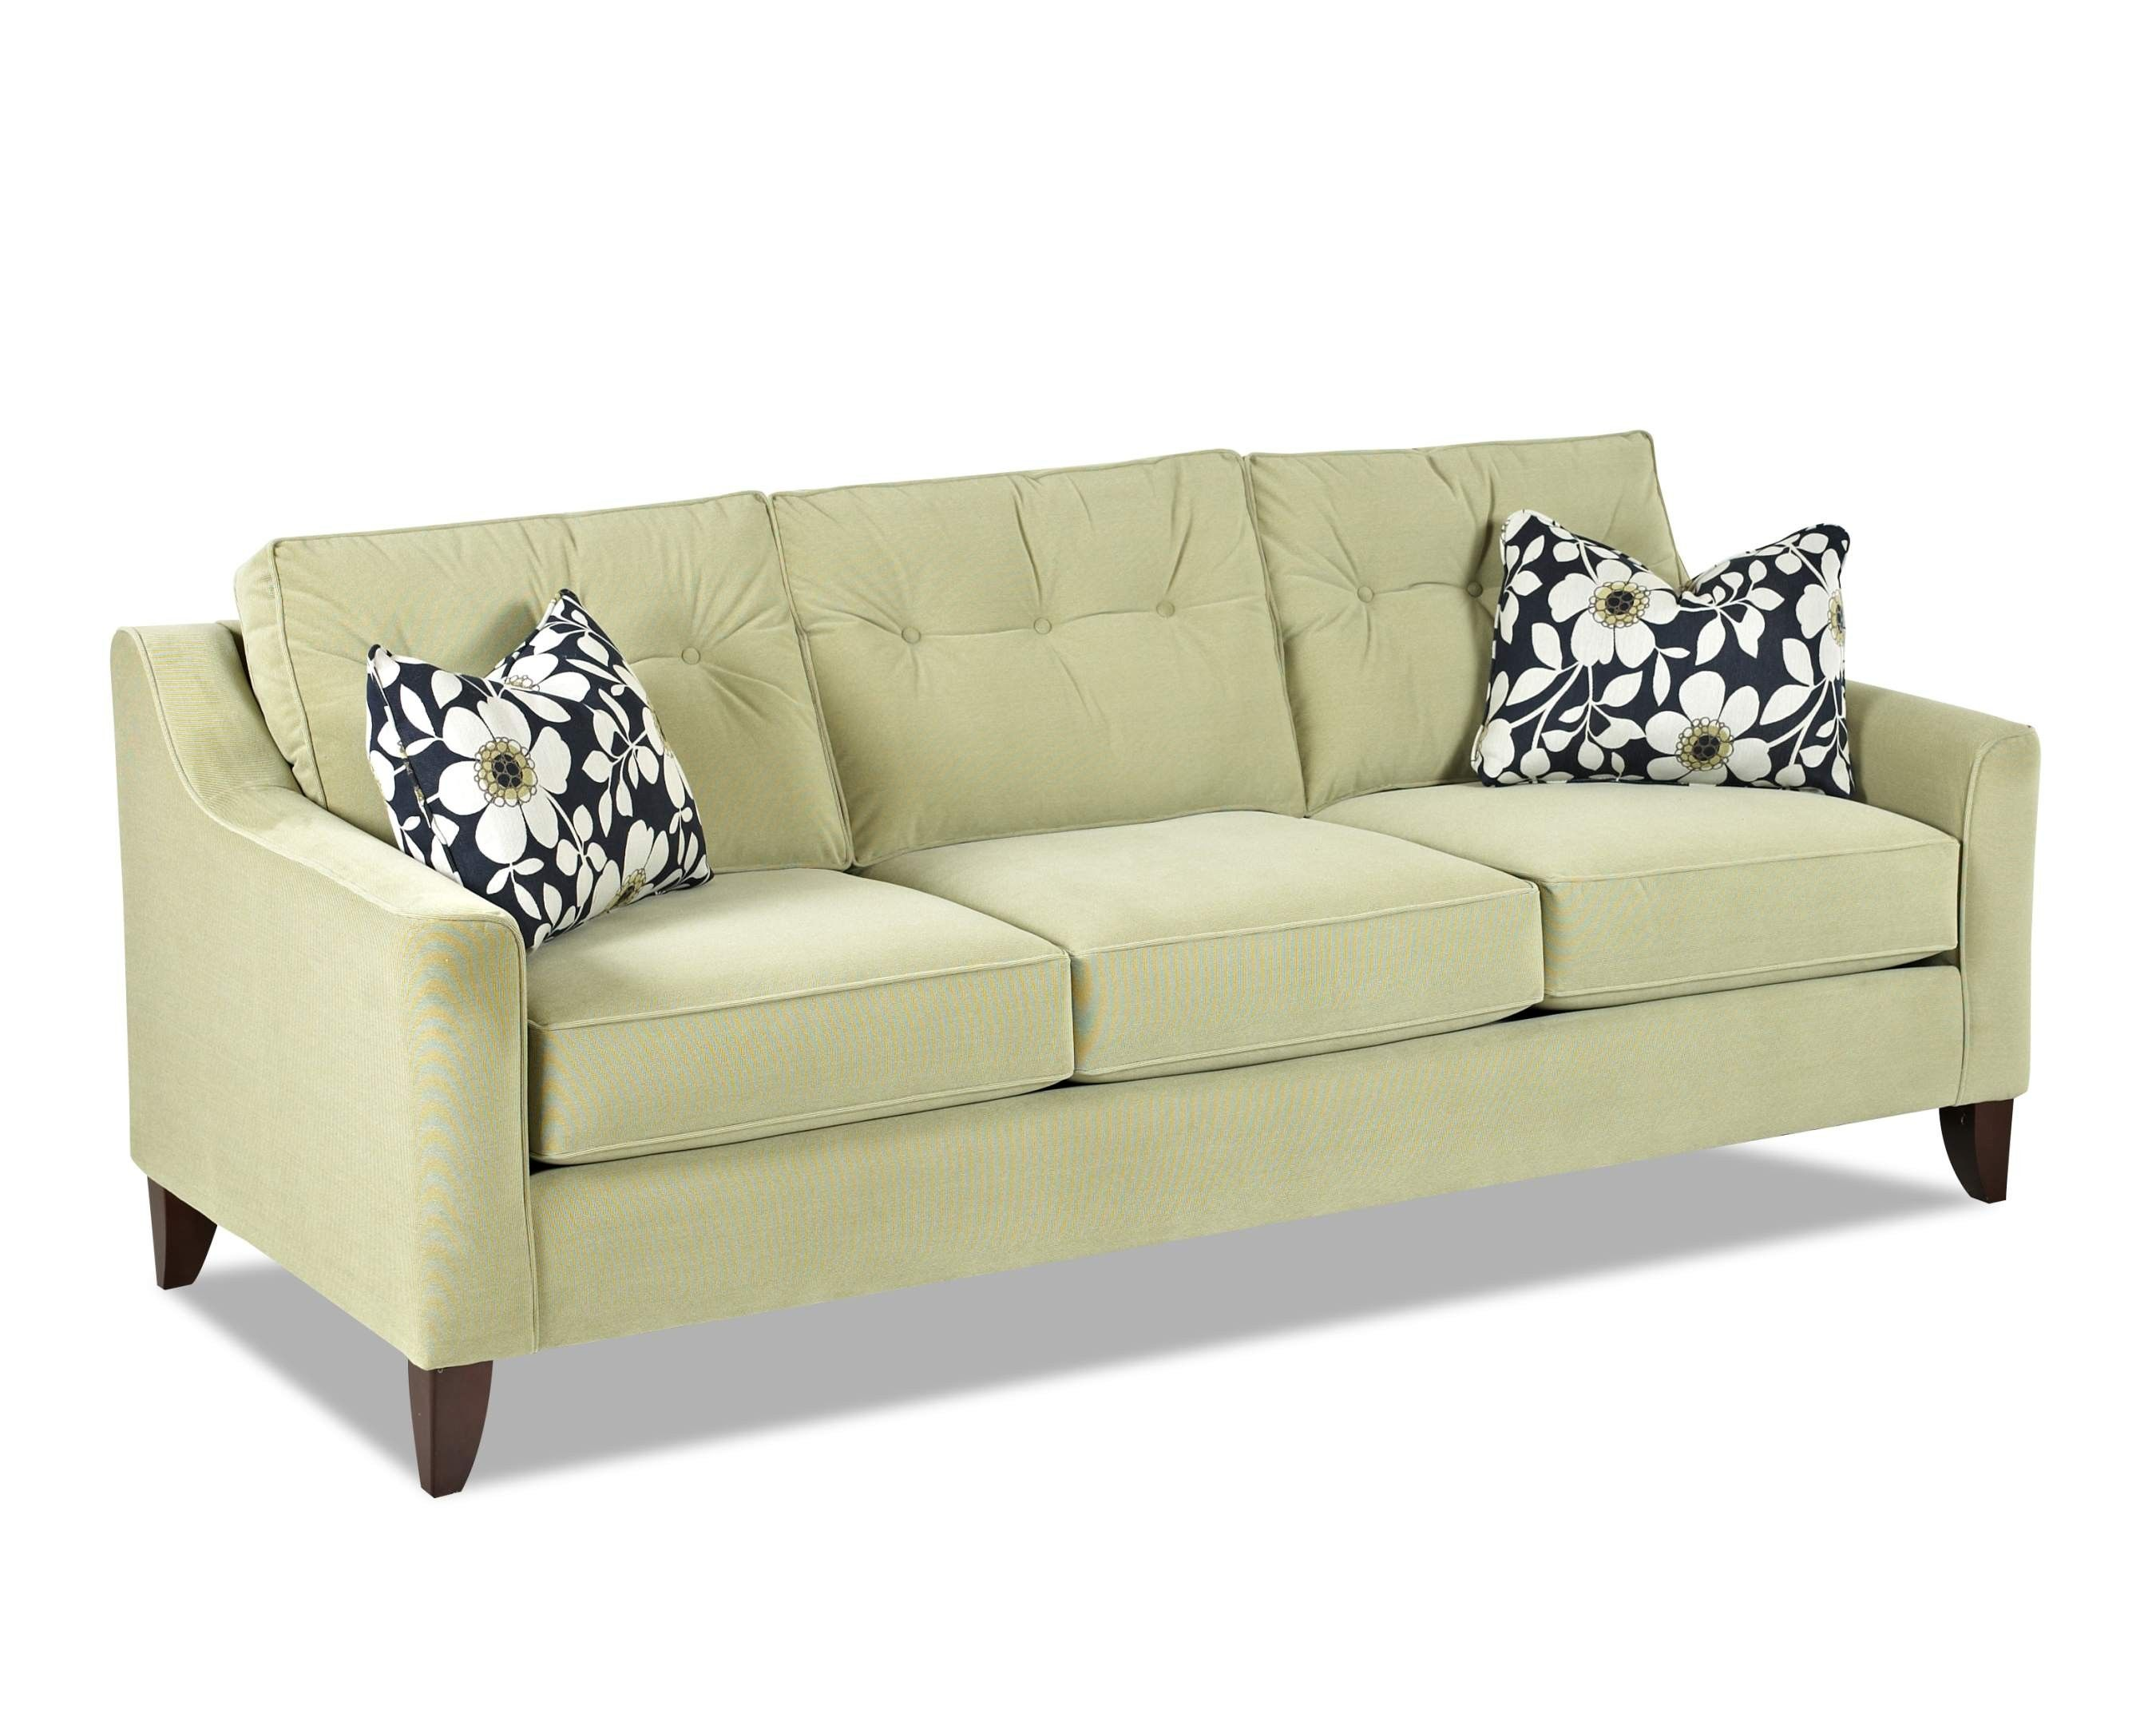 fancy klaussner sectional sofa image-Luxury Klaussner Sectional sofa Décor